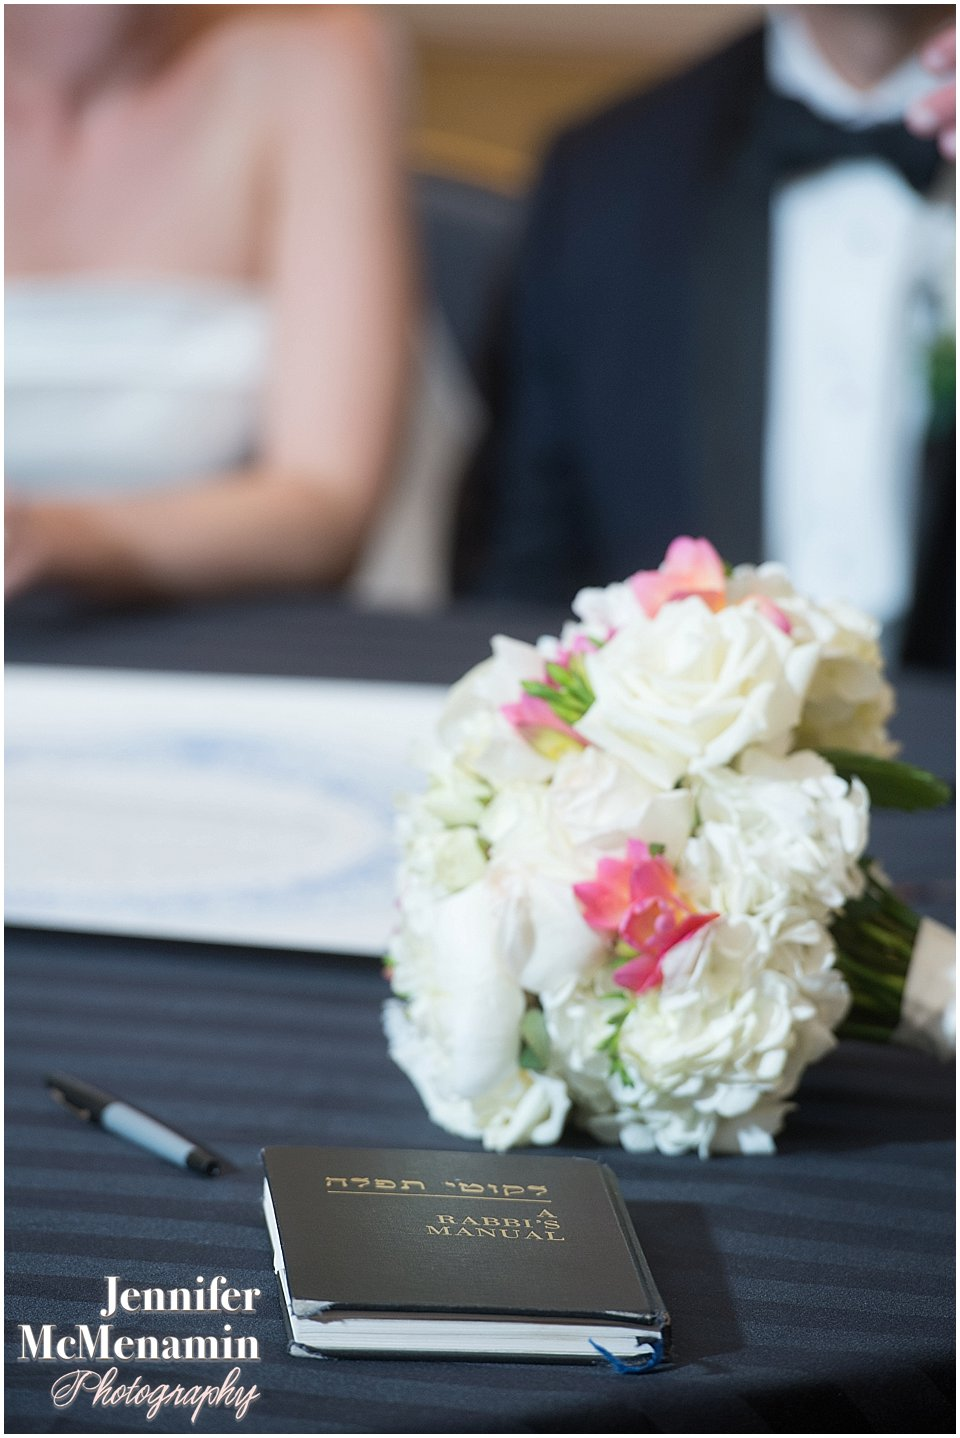 015-Jennifer-McMenamin-Photography-Baltimore-Waterfront-Marriott-wedding_0024